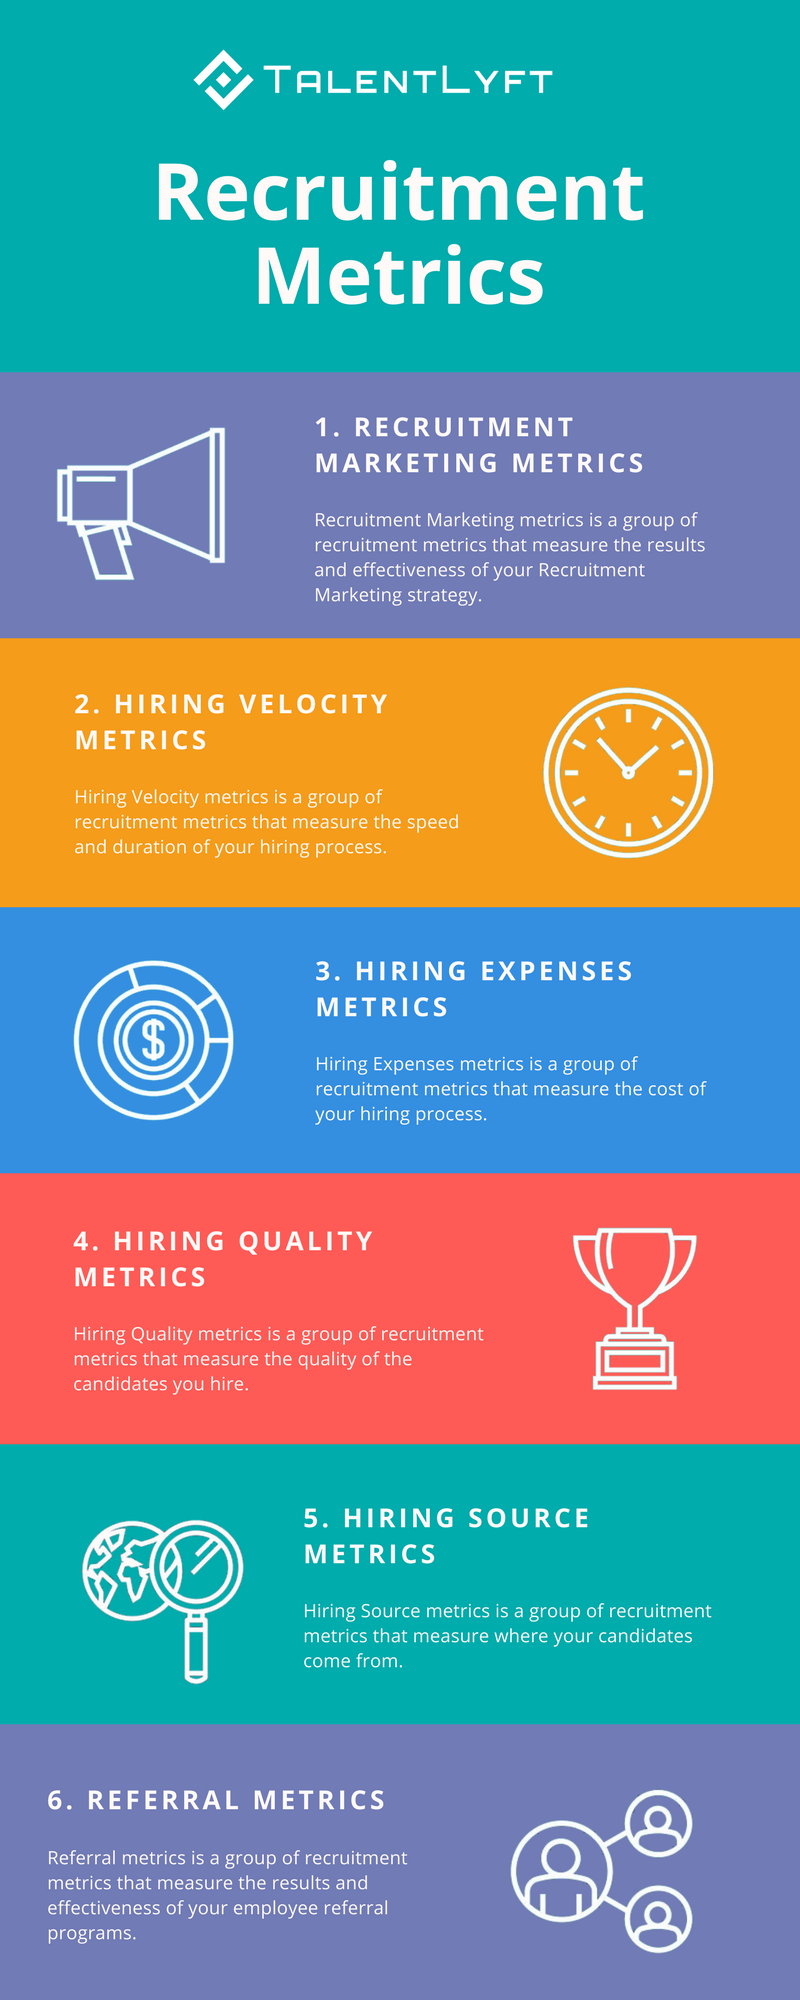 Recruiting-metrics-infographic-6-main-types